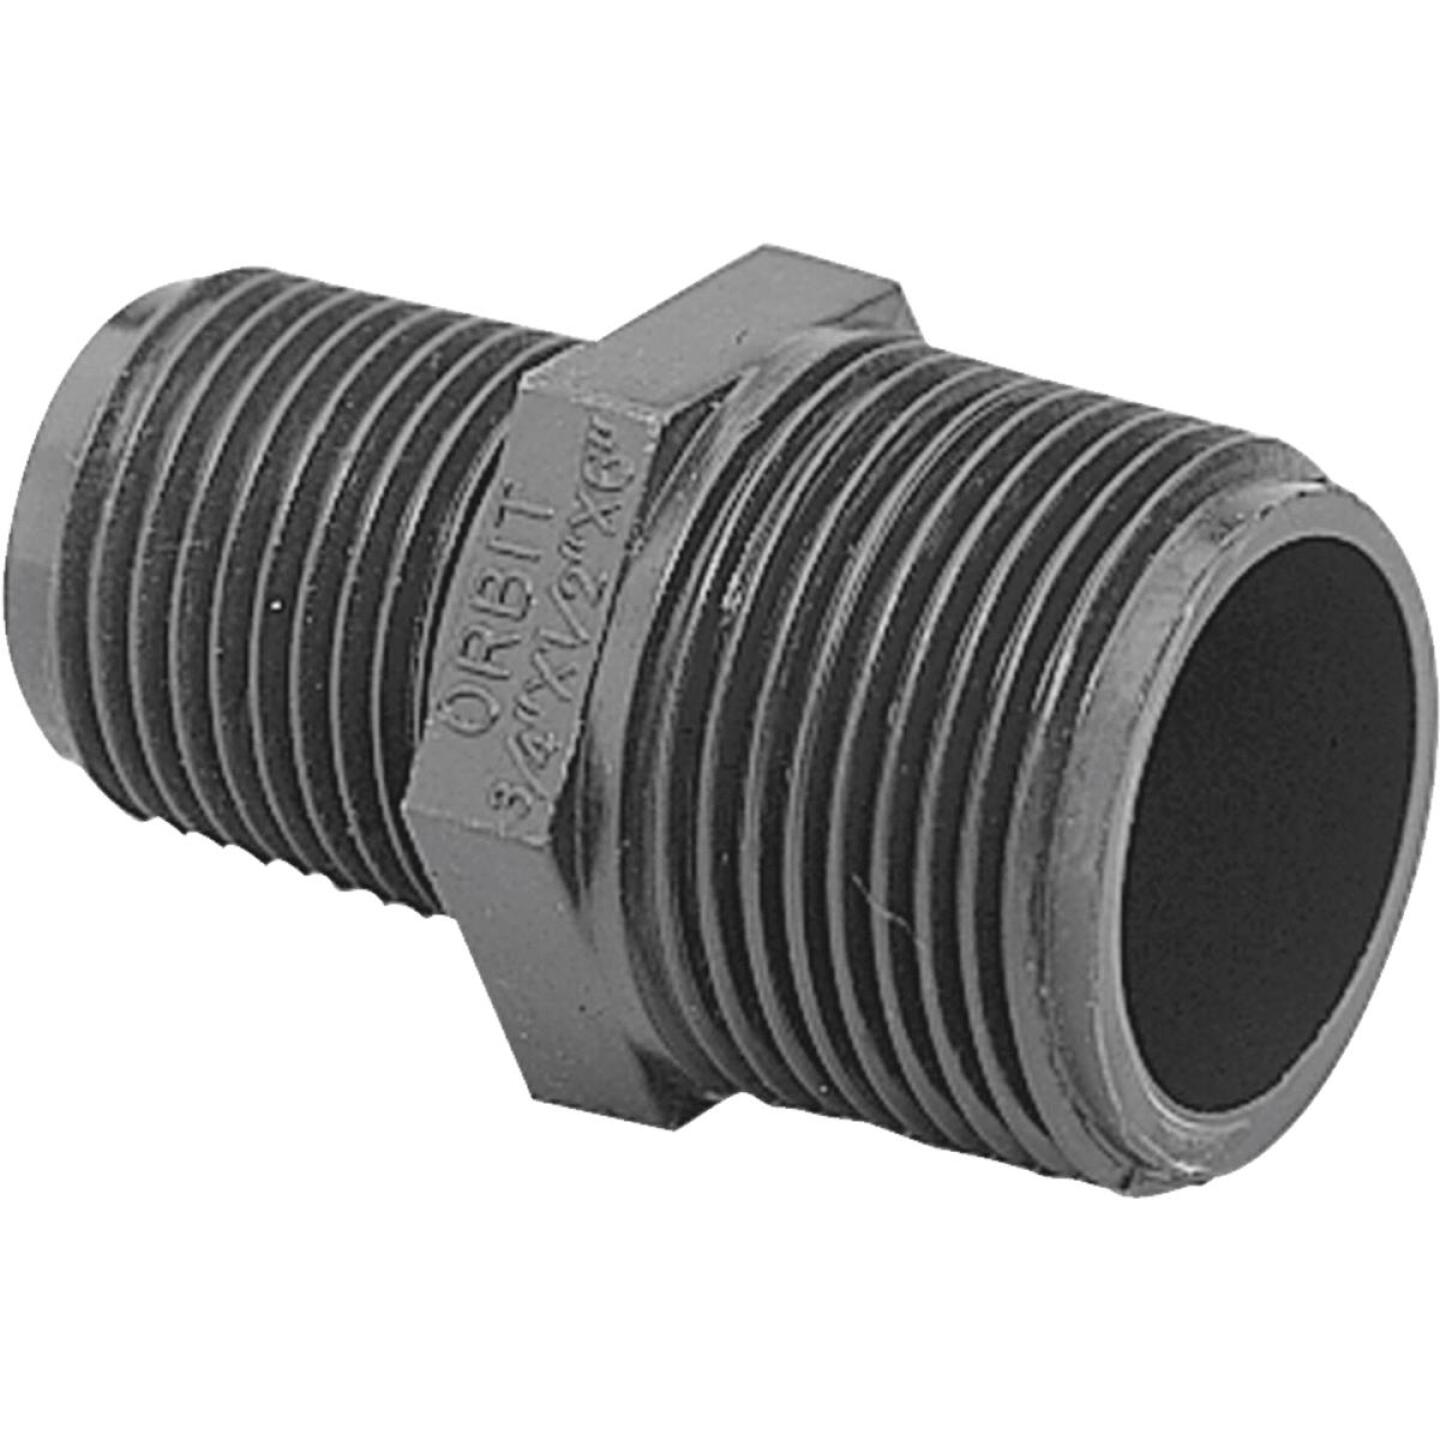 Orbit 1/2 In. x 3/4 In. MNPT Poly Extension Adapter Image 1